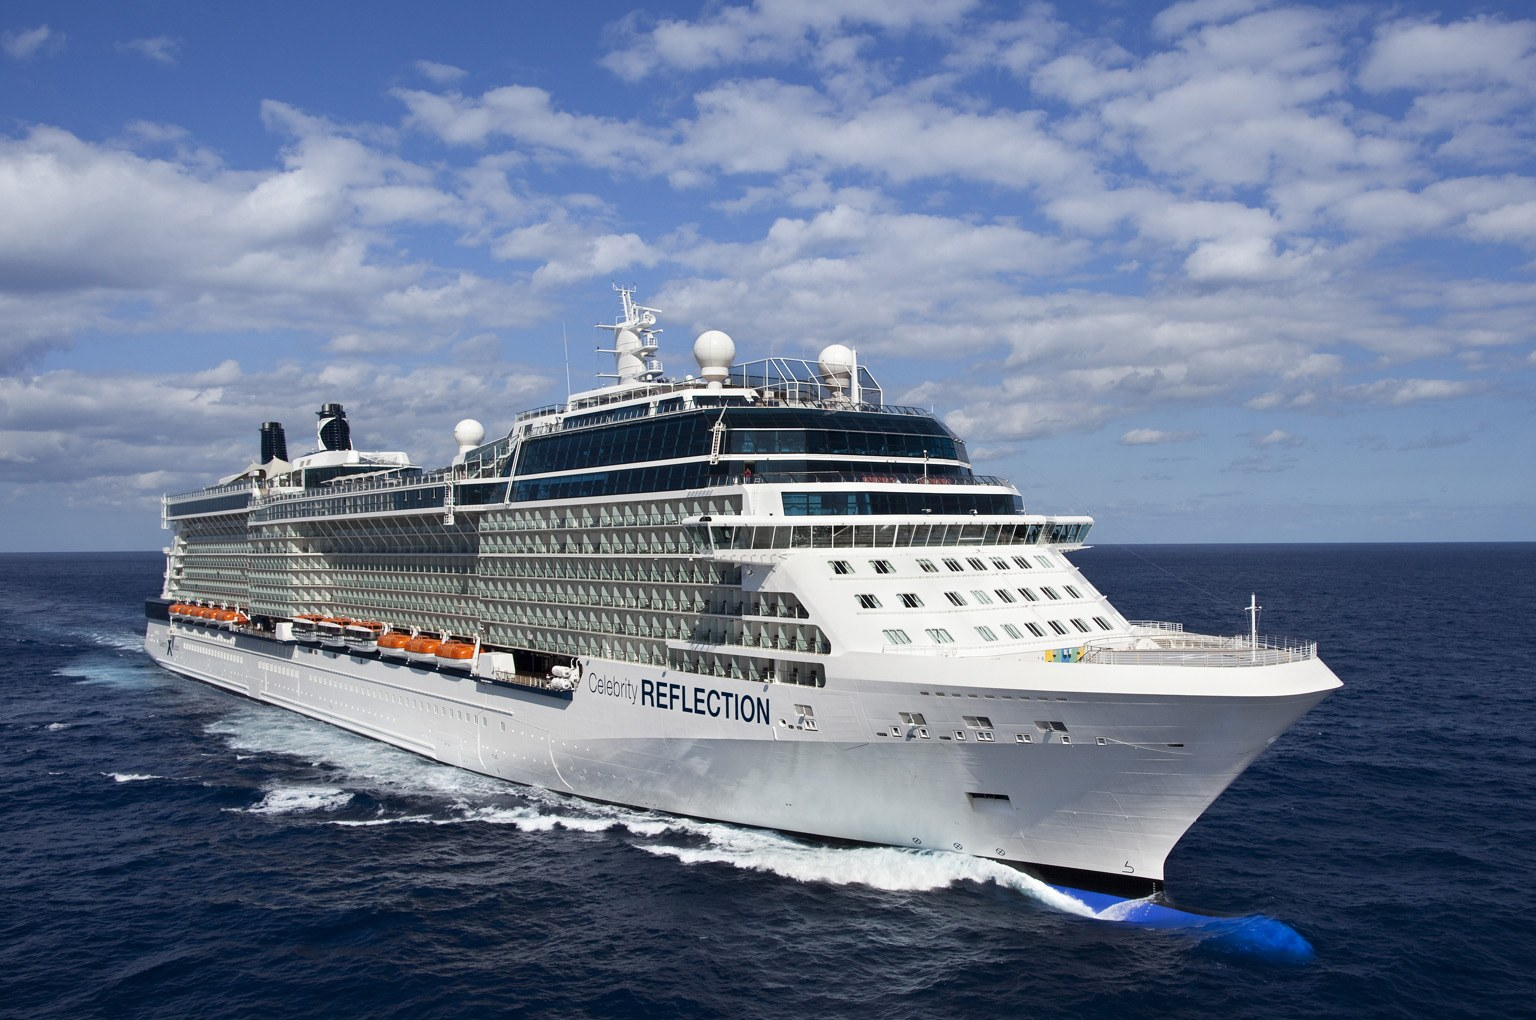 Celebrity Reflection Cruise Ship from Celebrity Cruise Line